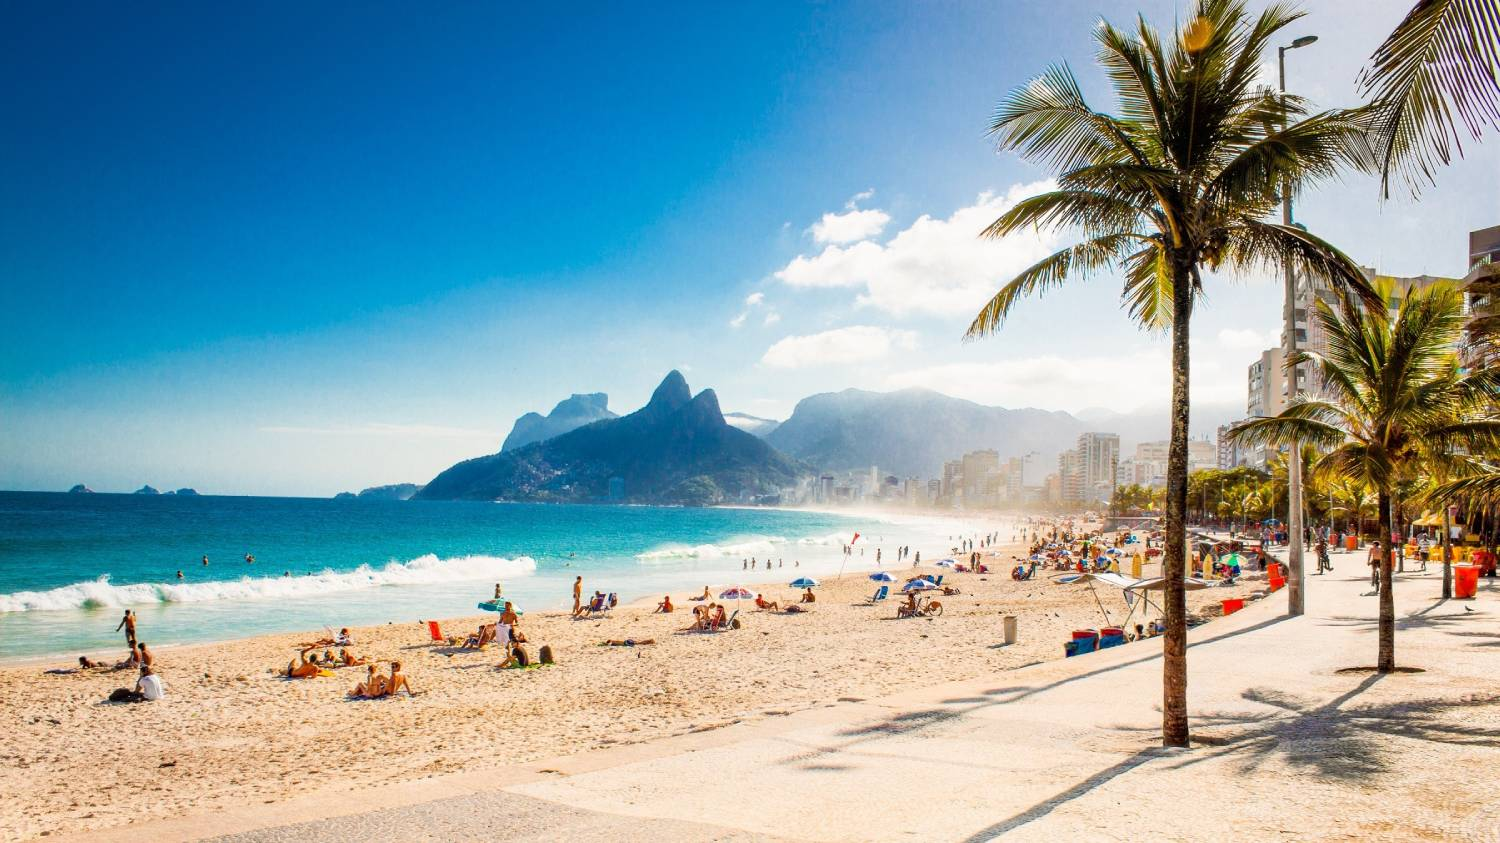 Brazil - The Best Countries To Visit In South America